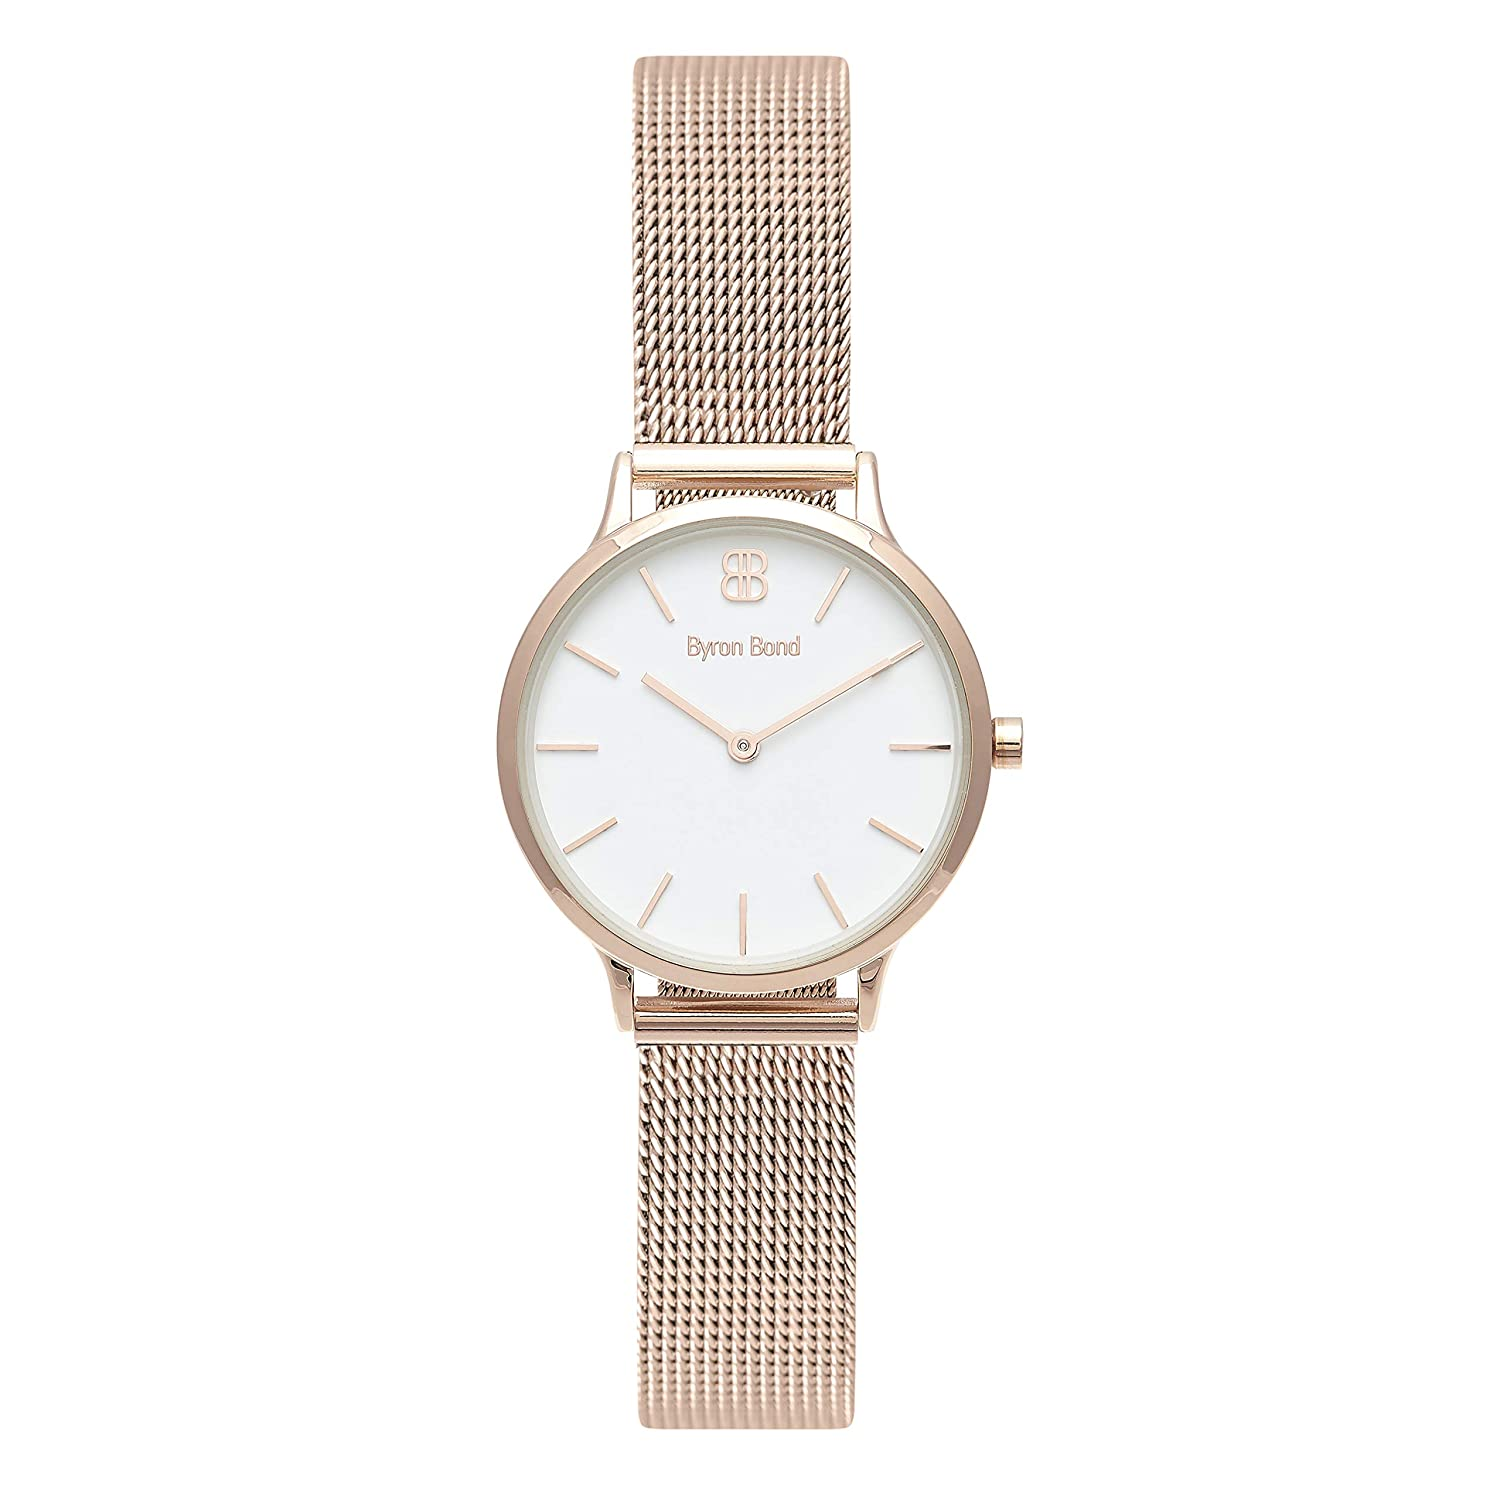 Amazon.com: Byron Bond Mark 5 - Luxury 32mm Wrist Watches for Women (Dean - Rose Gold Case with White Dial and Rose Gold Mesh Strap): Byron Bond: Watches